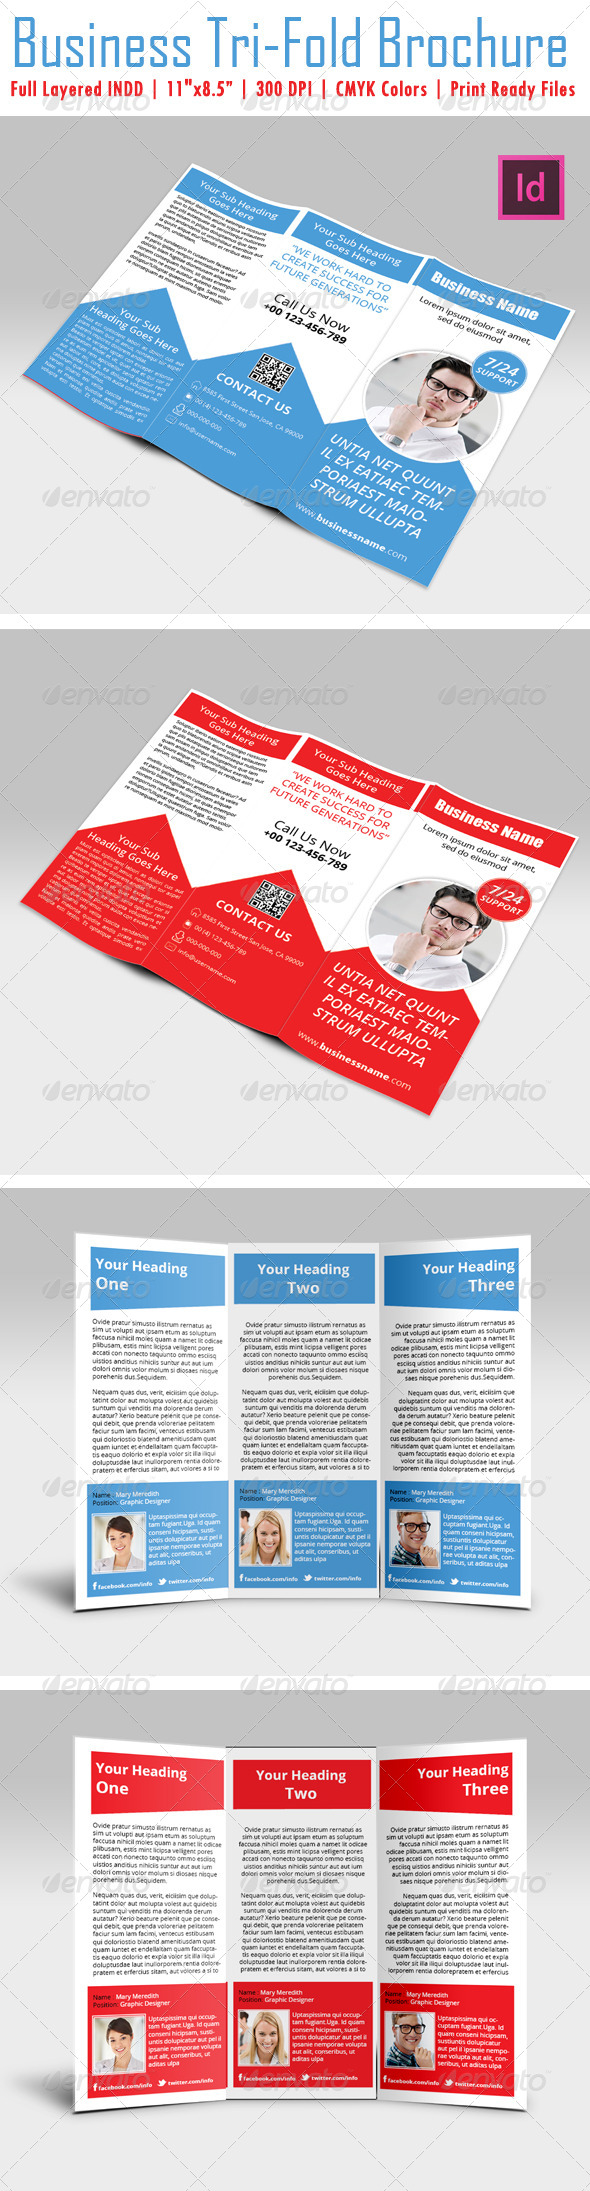 GraphicRiver Business Tri-Fold Brochure 4687729